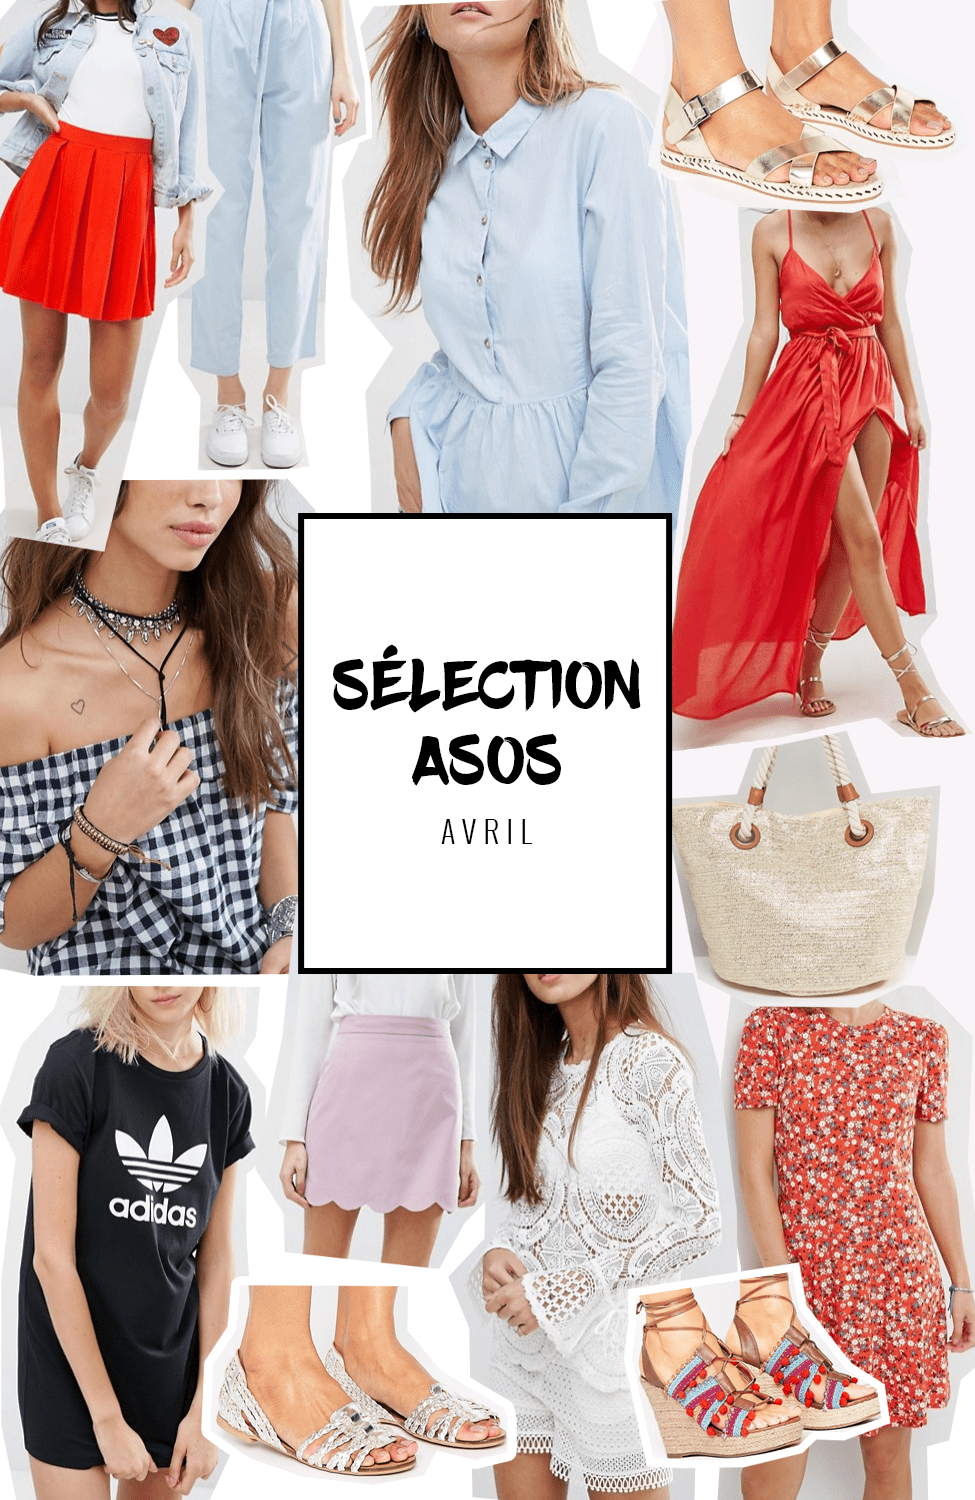 asos-selection